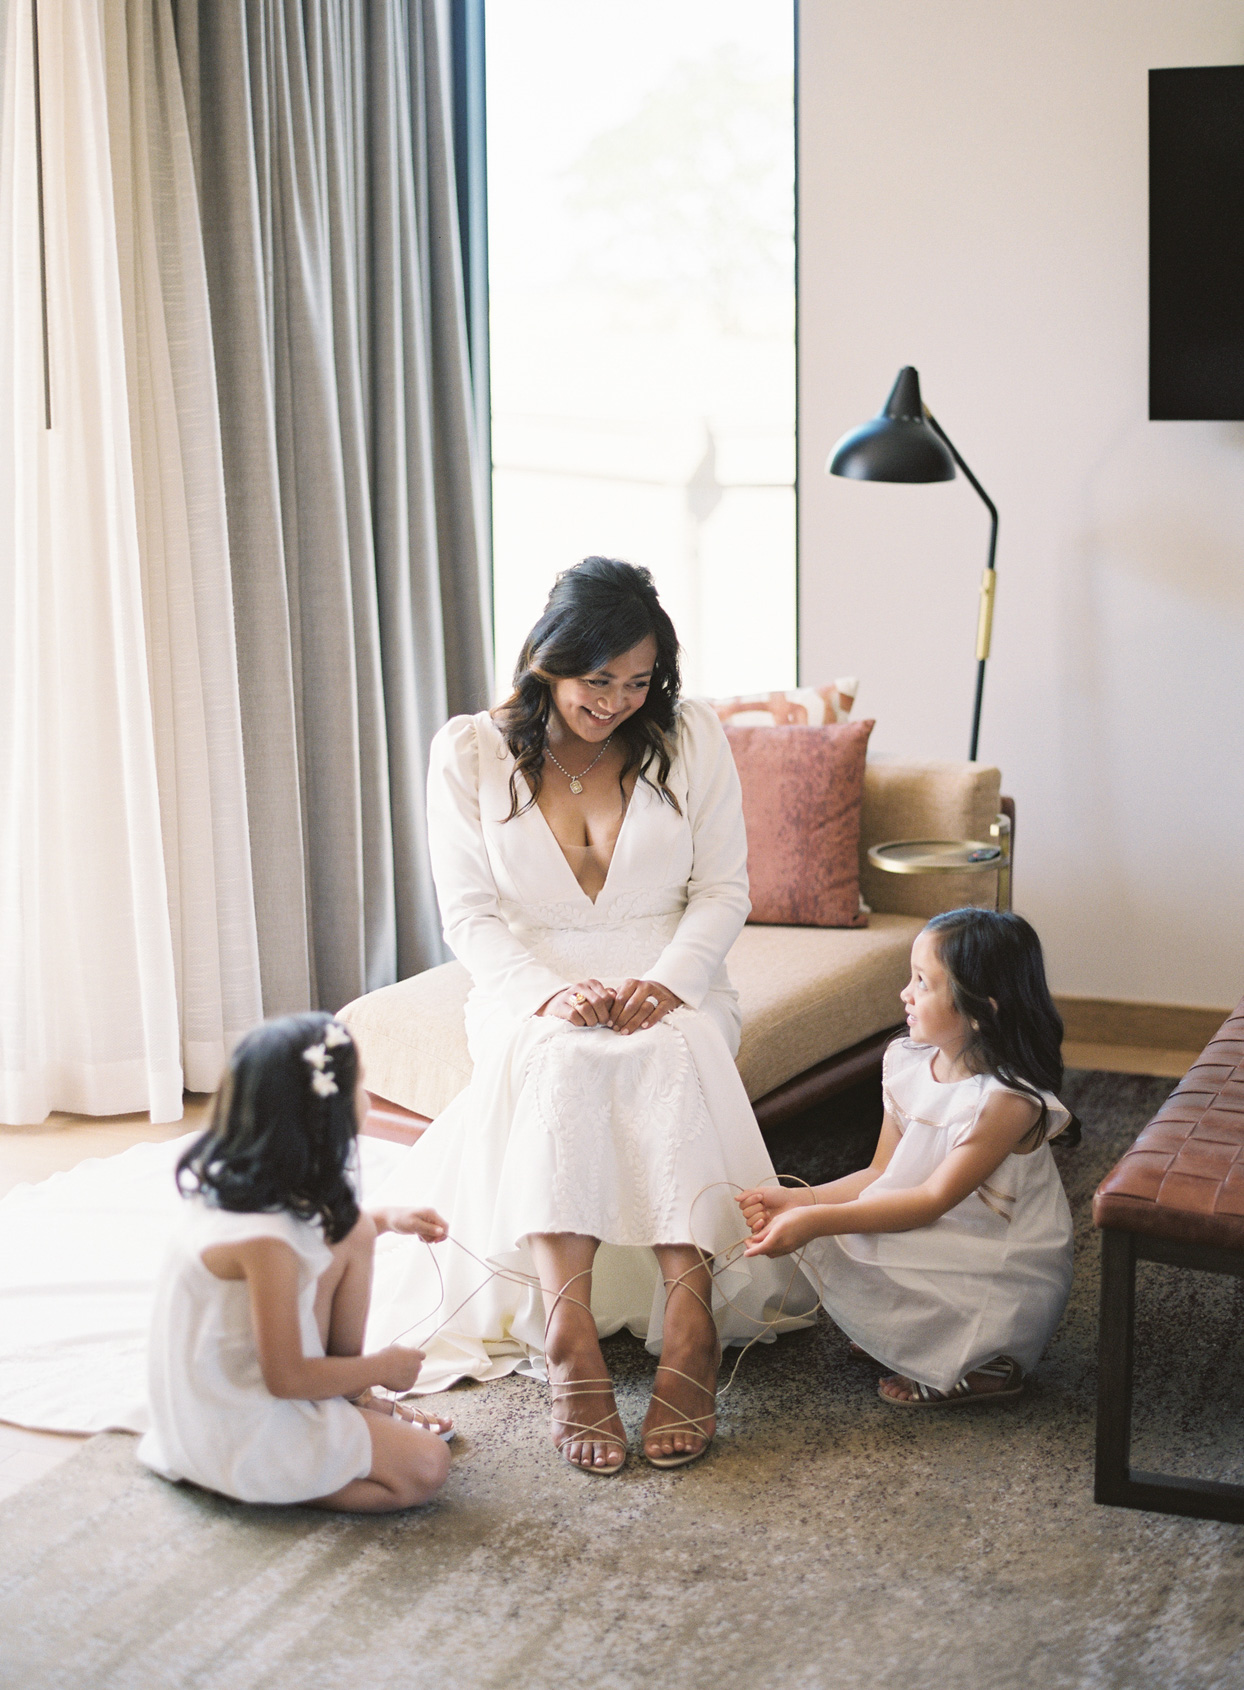 sarah in white dress with daughters strapping up her shoes